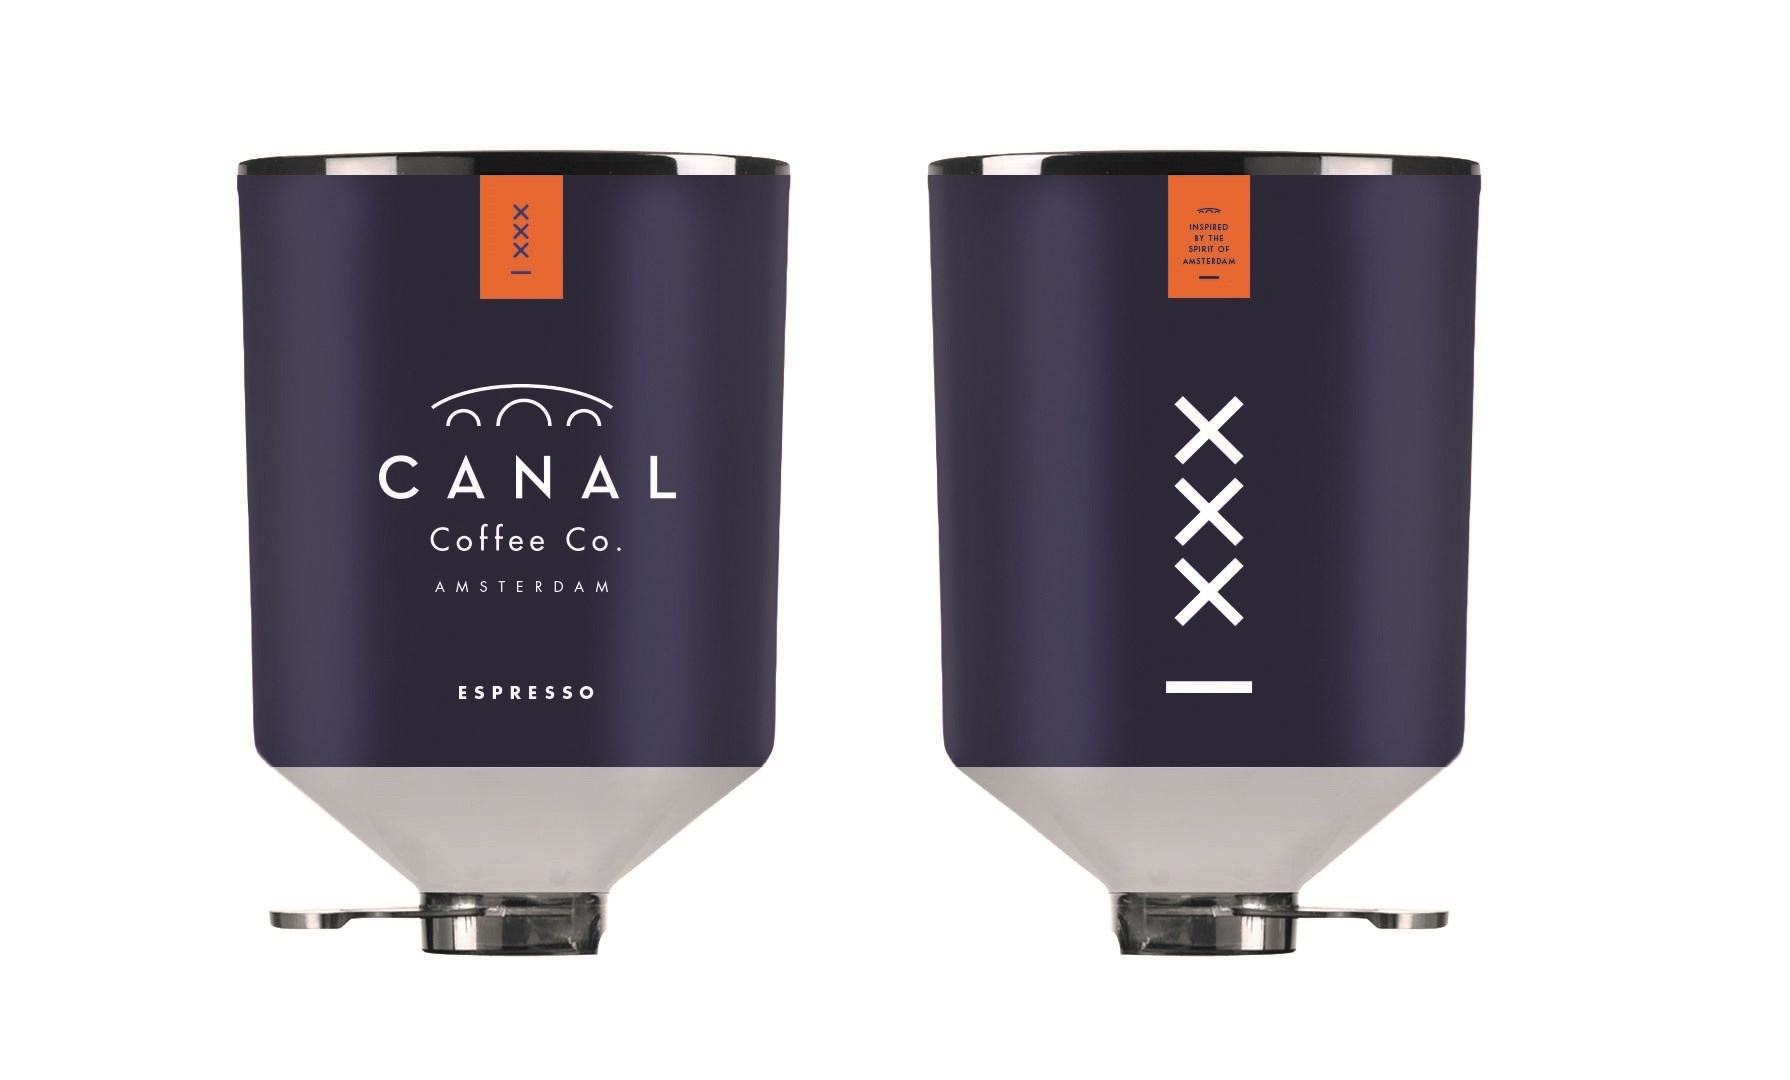 Productafbeelding Canal Coffee Co. Espresso blik (2x3000gr)